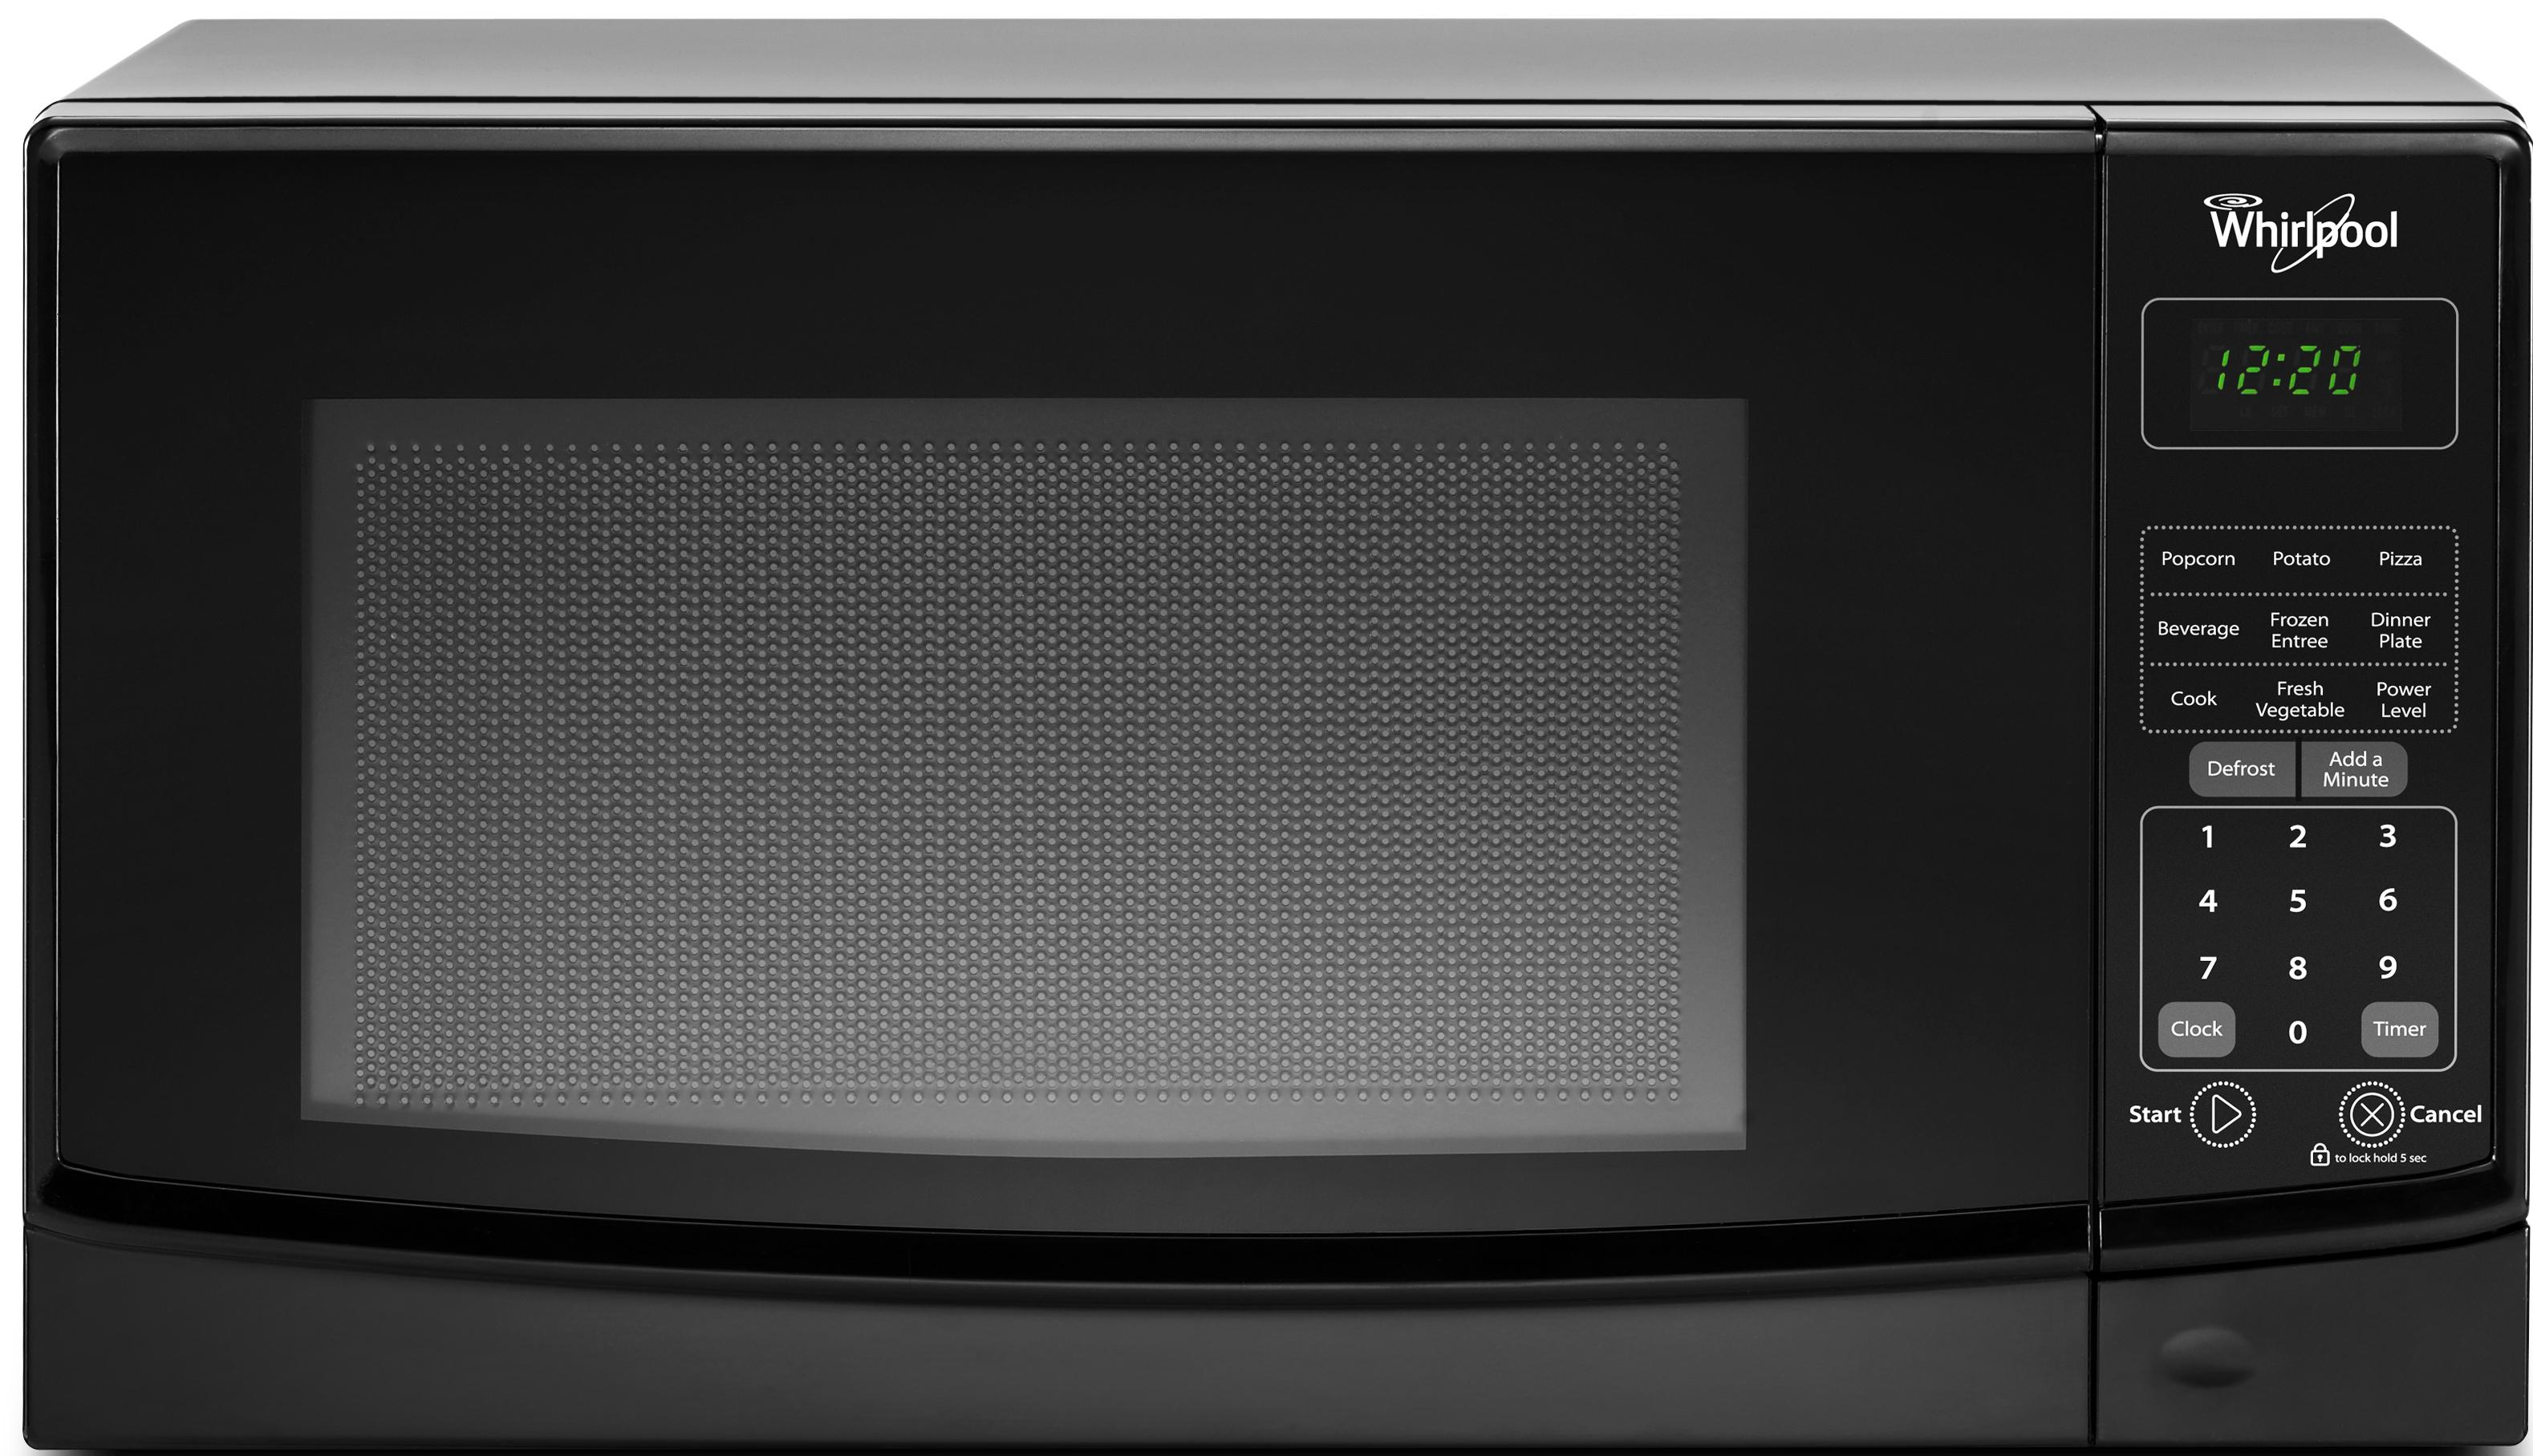 Whirlpool Wmc10007ab 0 7 Cu Ft Countertop Microwave With 700 Watts Cooking Power Furniture And Appliancemart Microwaves Countertop